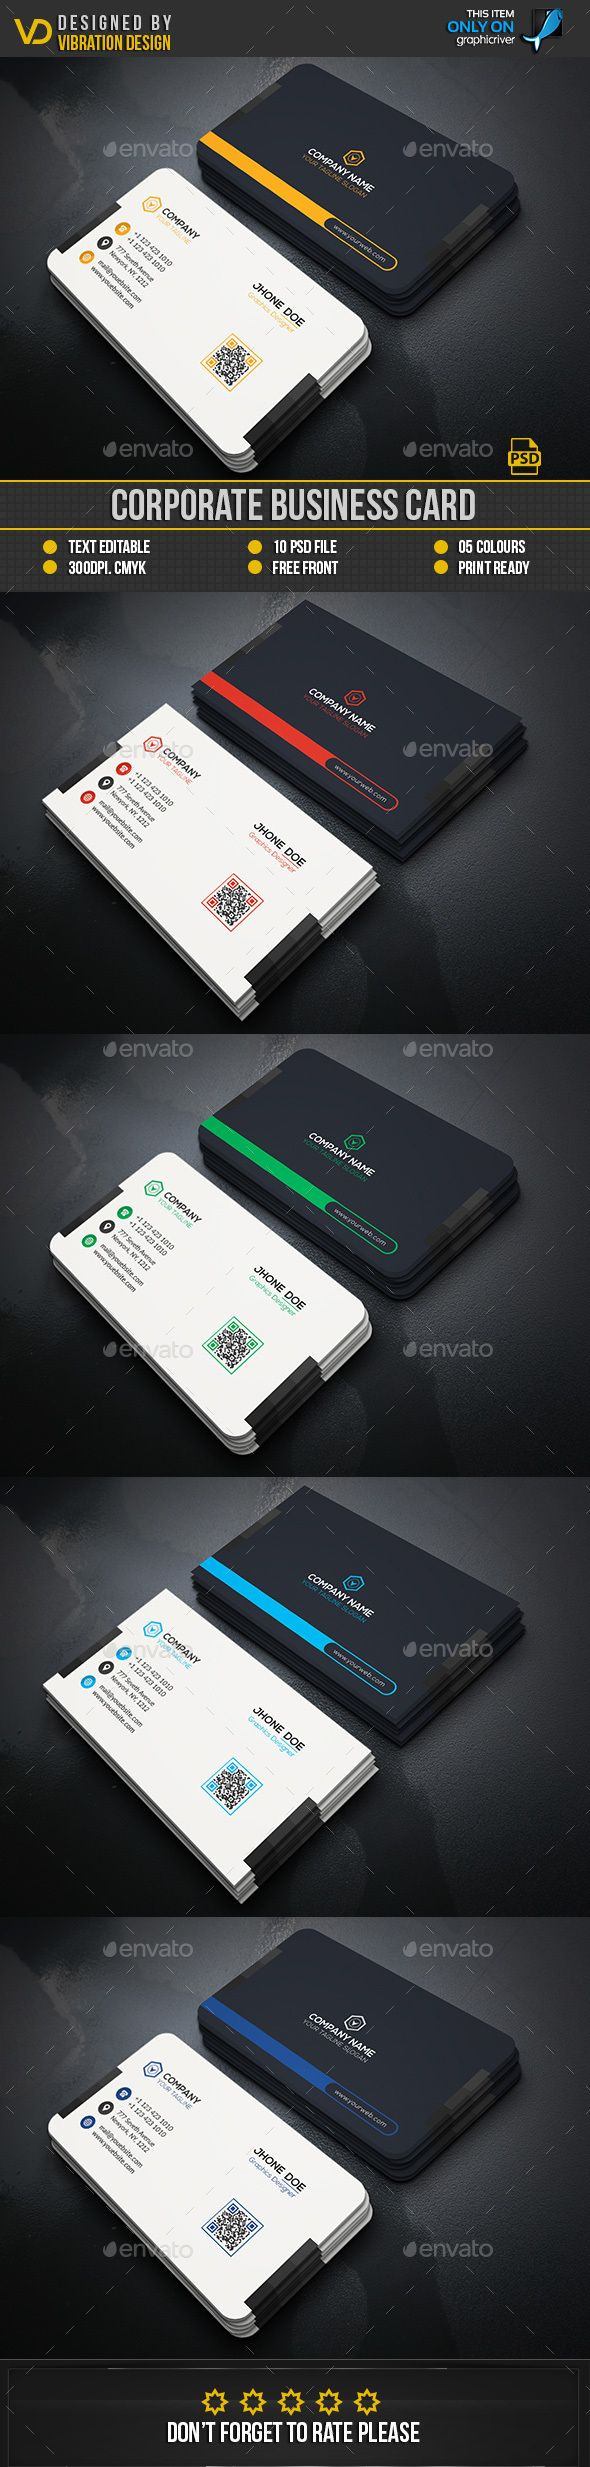 195 best business cards images on pinterest business card design corporate business card photoshop psd simple flyer available here https reheart Image collections